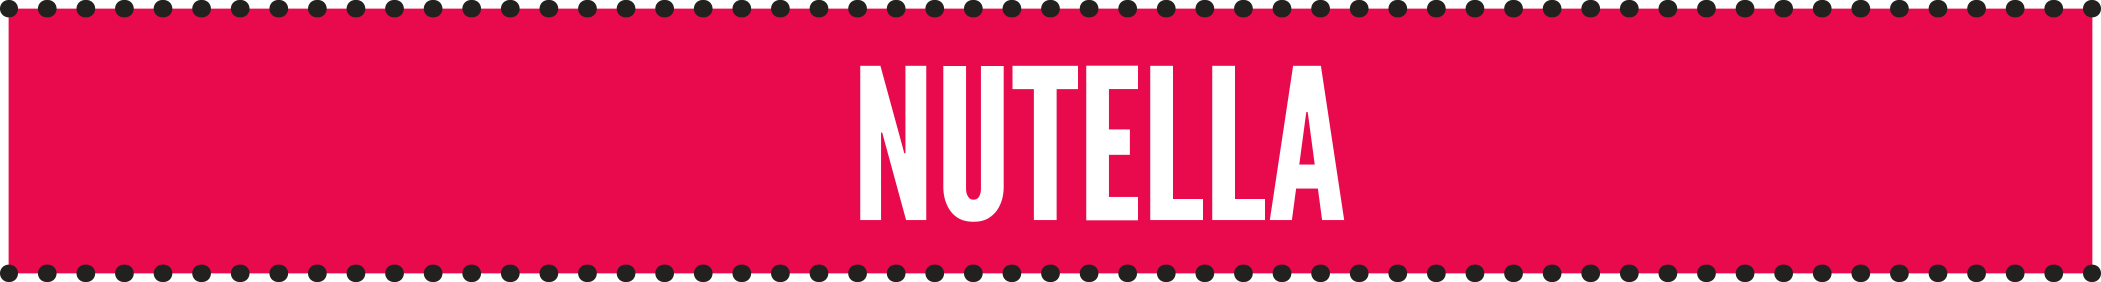 Nutella Name.png